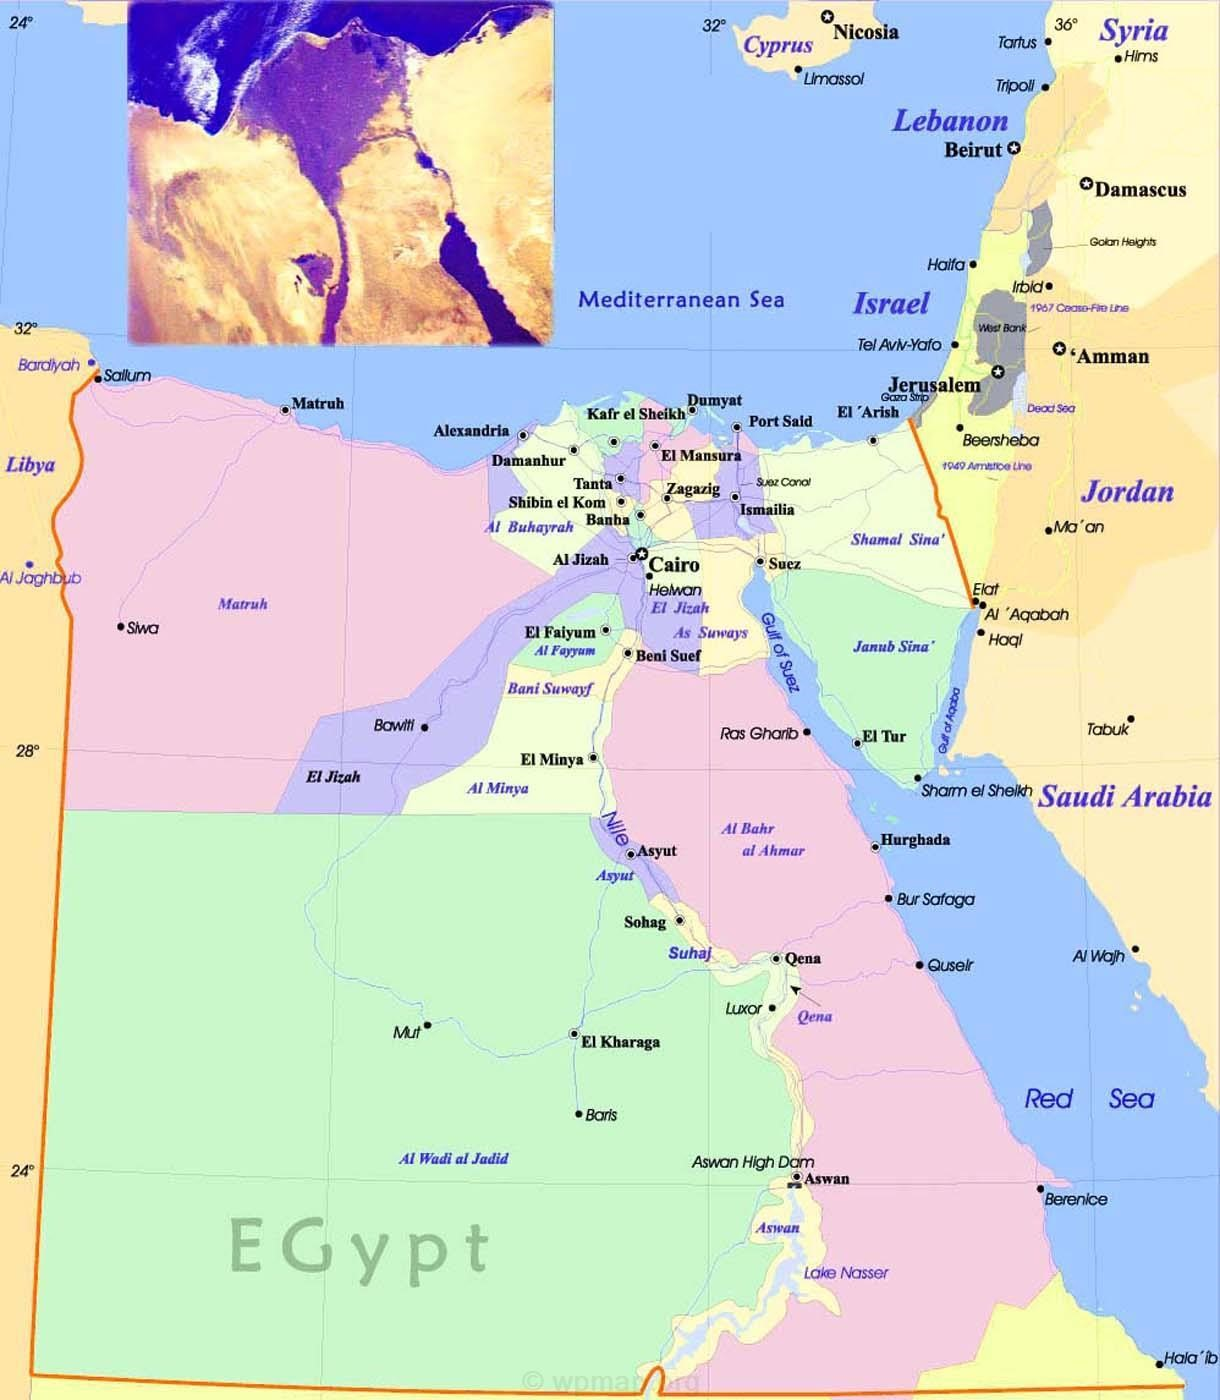 large-size-political-map-of-egypt